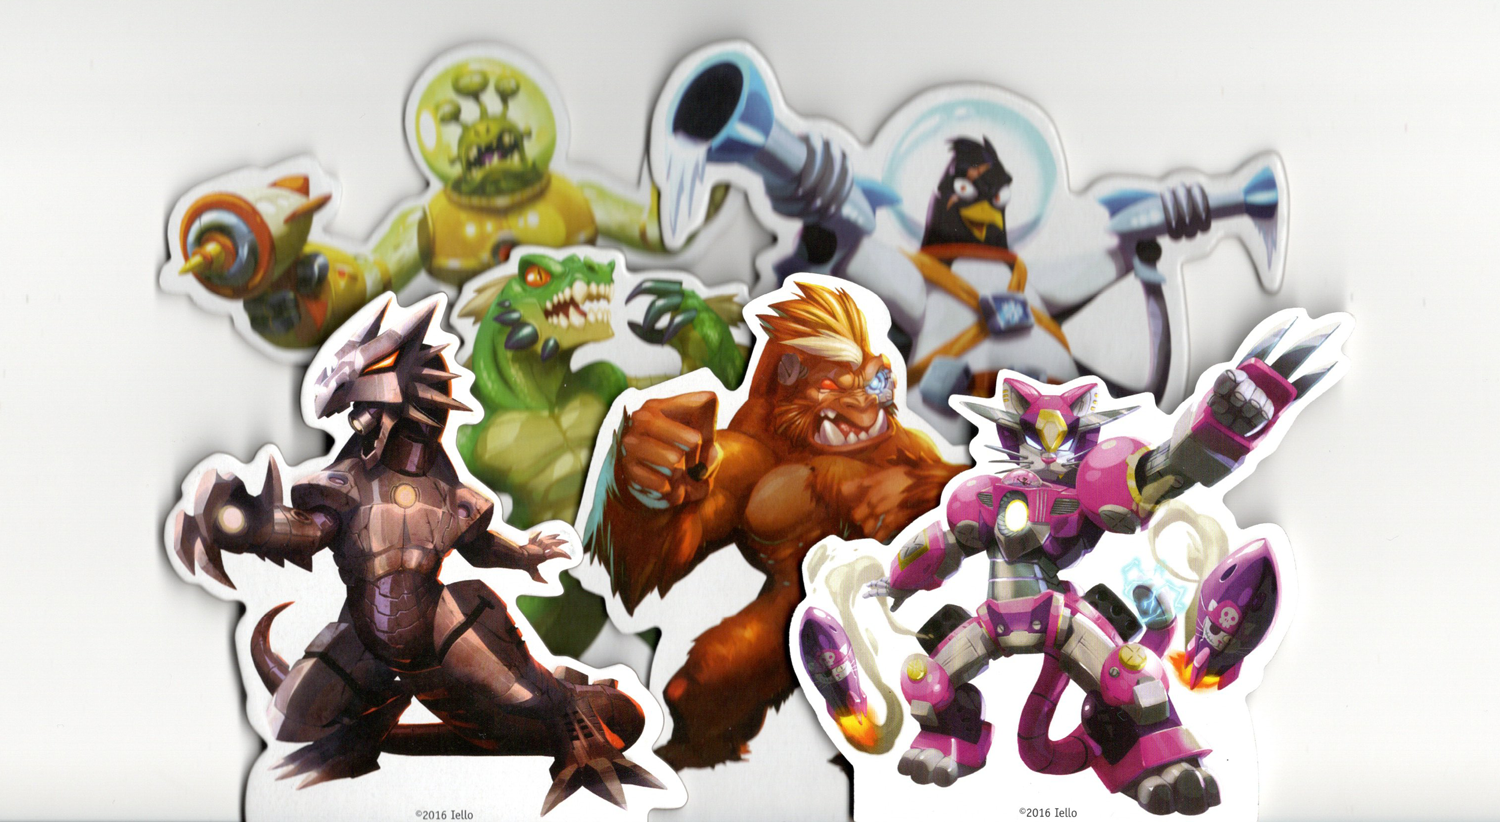 King-of-Tokyo-Characters